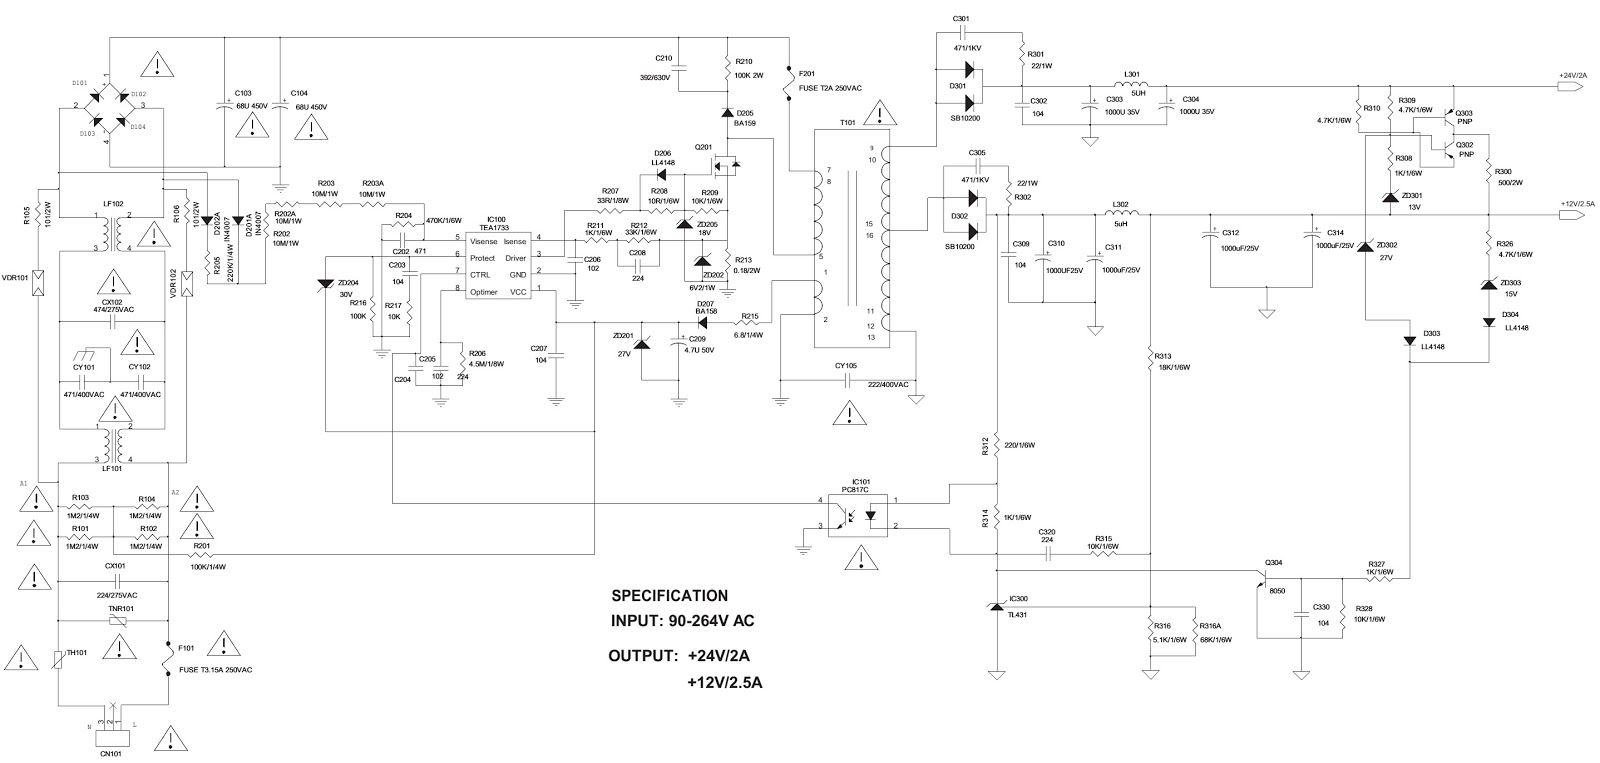 medium resolution of toshiba wiring diagram wiring diagram toshiba wiring diagram wiring diagram read toshiba g9 wiring diagram toshiba